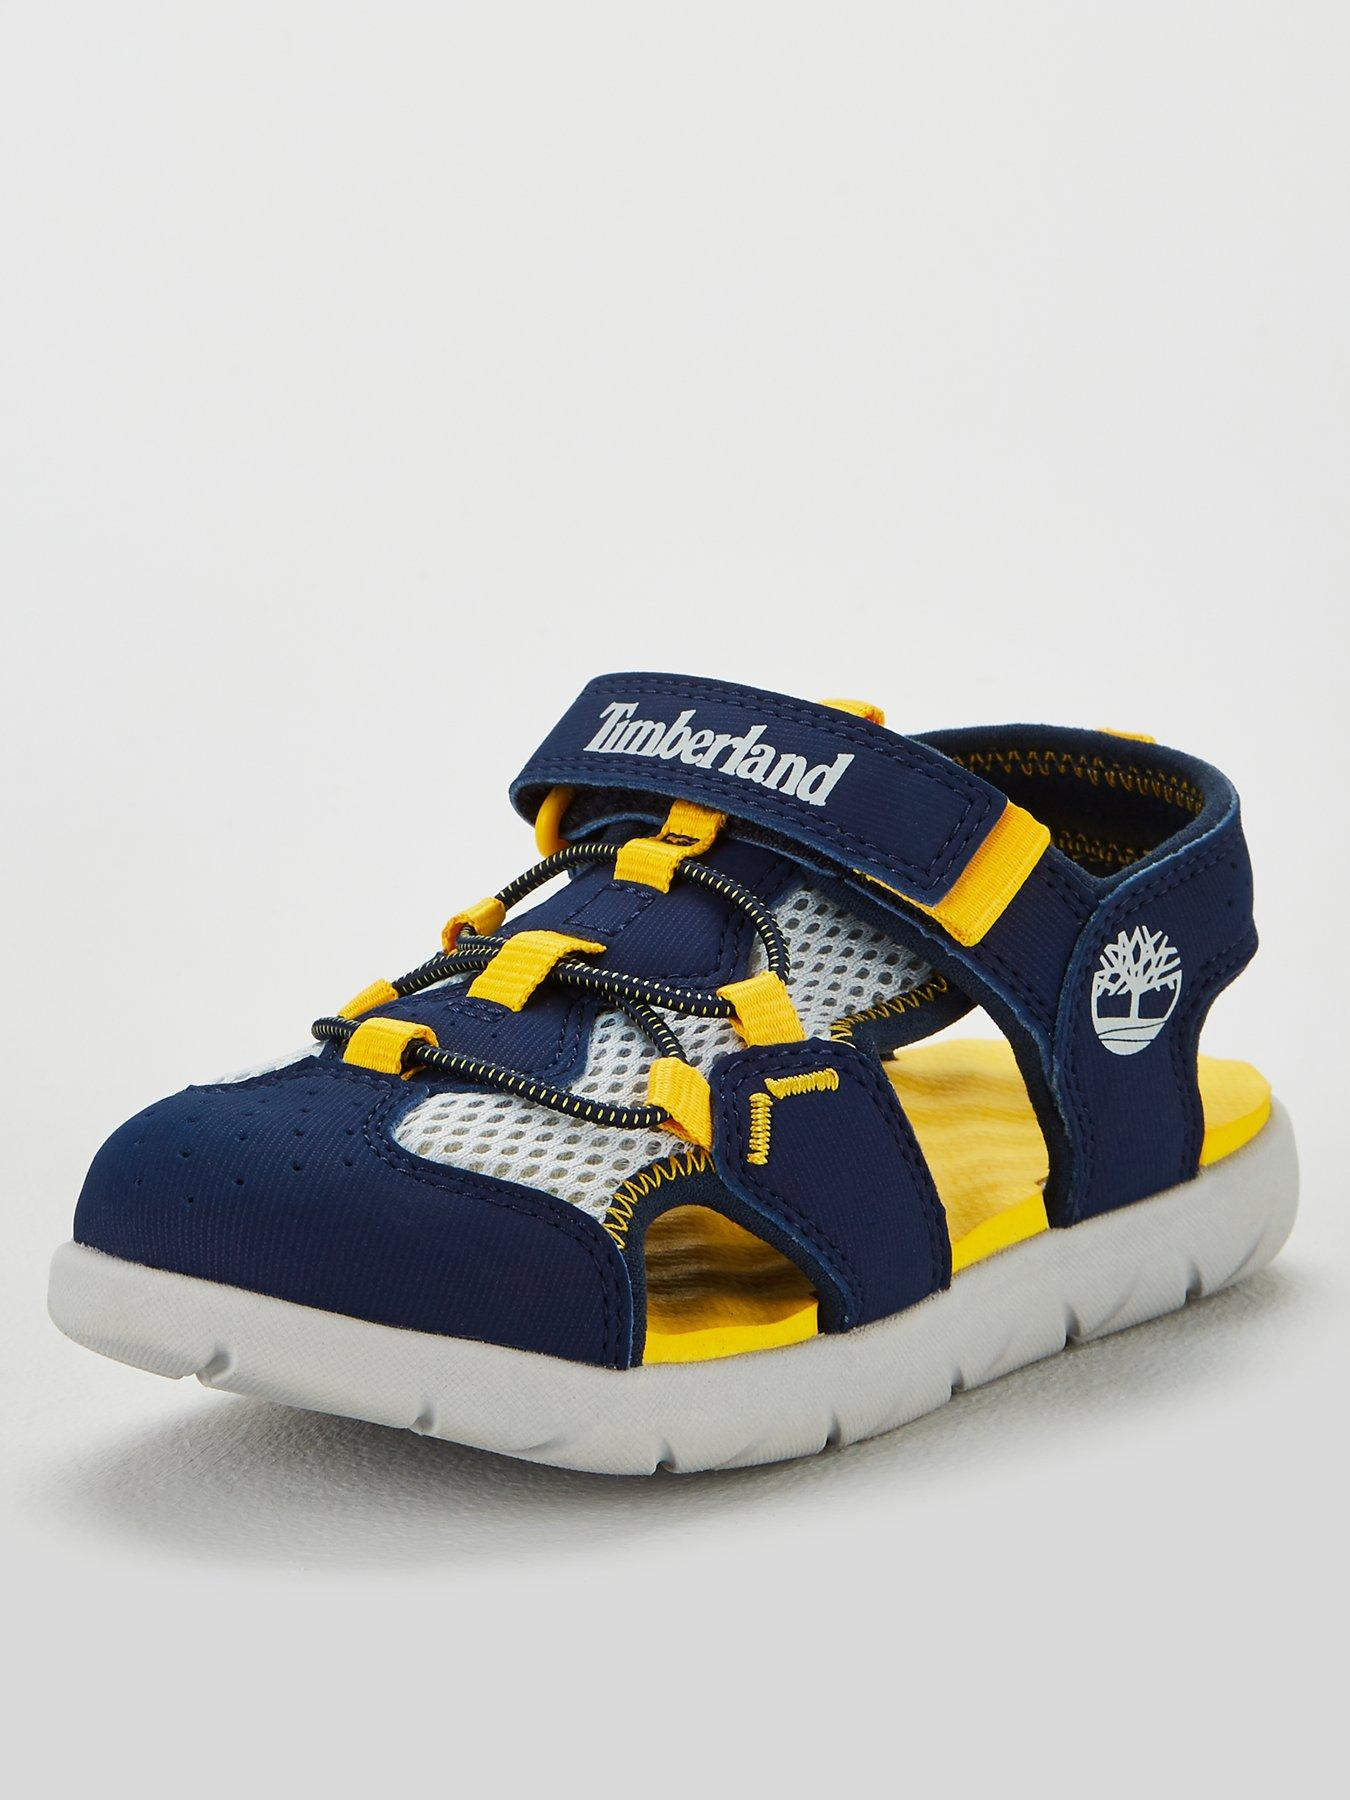 Boys' Shoes Clothes, Shoes & Accessories Smart Toddler Timberland Sandals